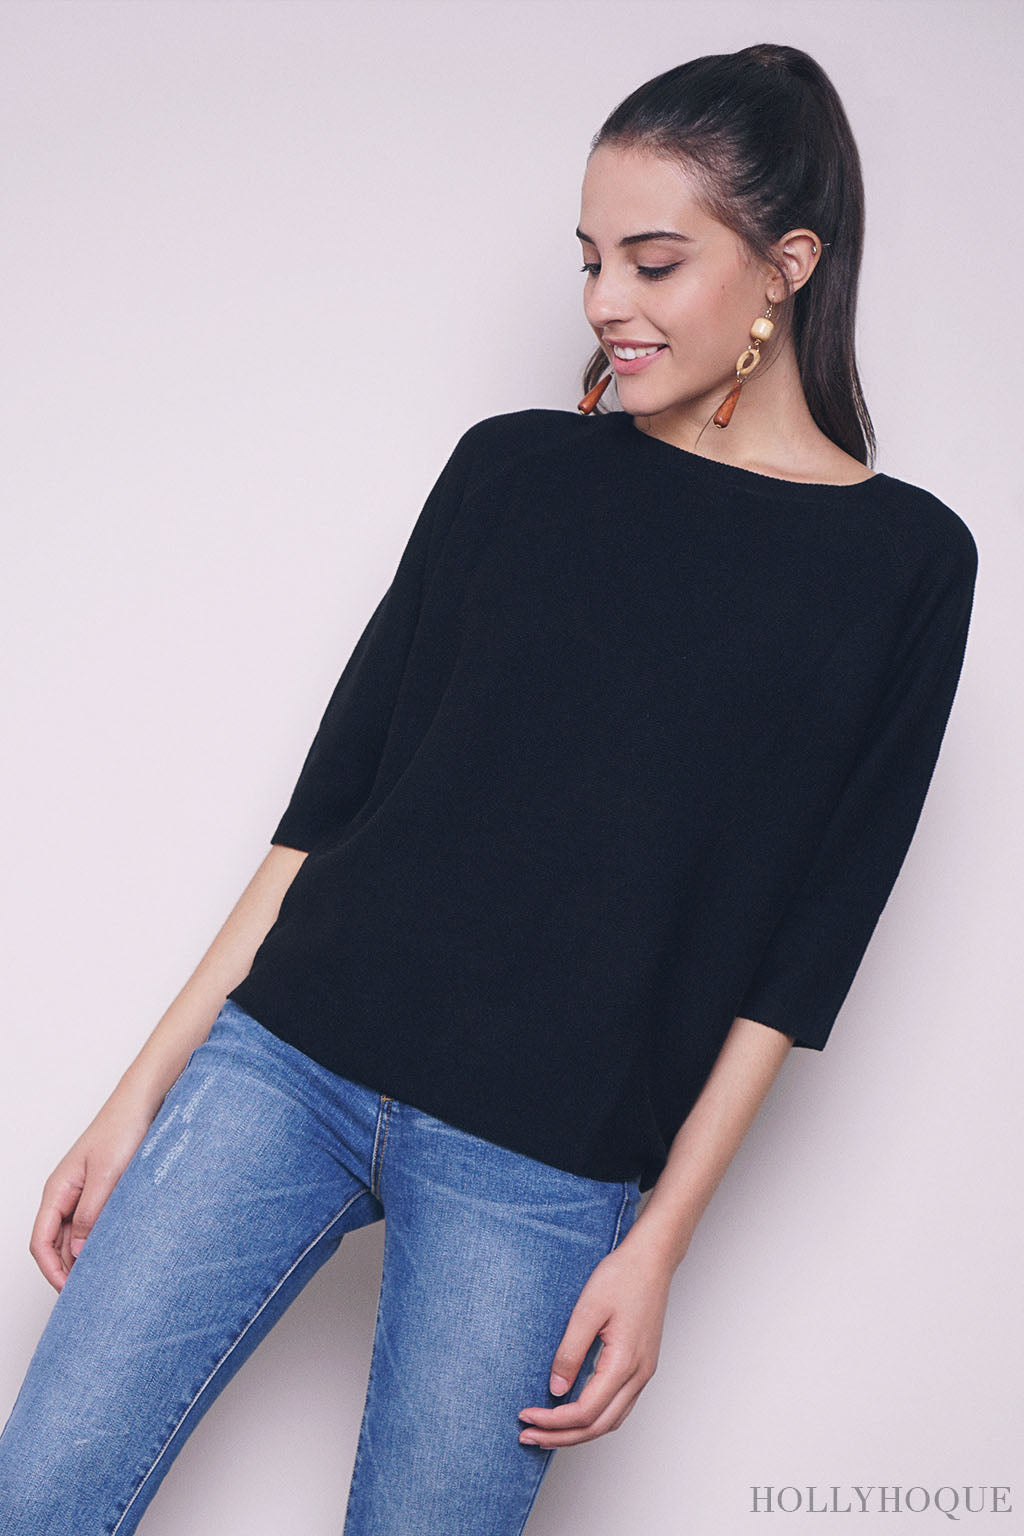 Gerber Oversized Knit Blouse Black (Restock)